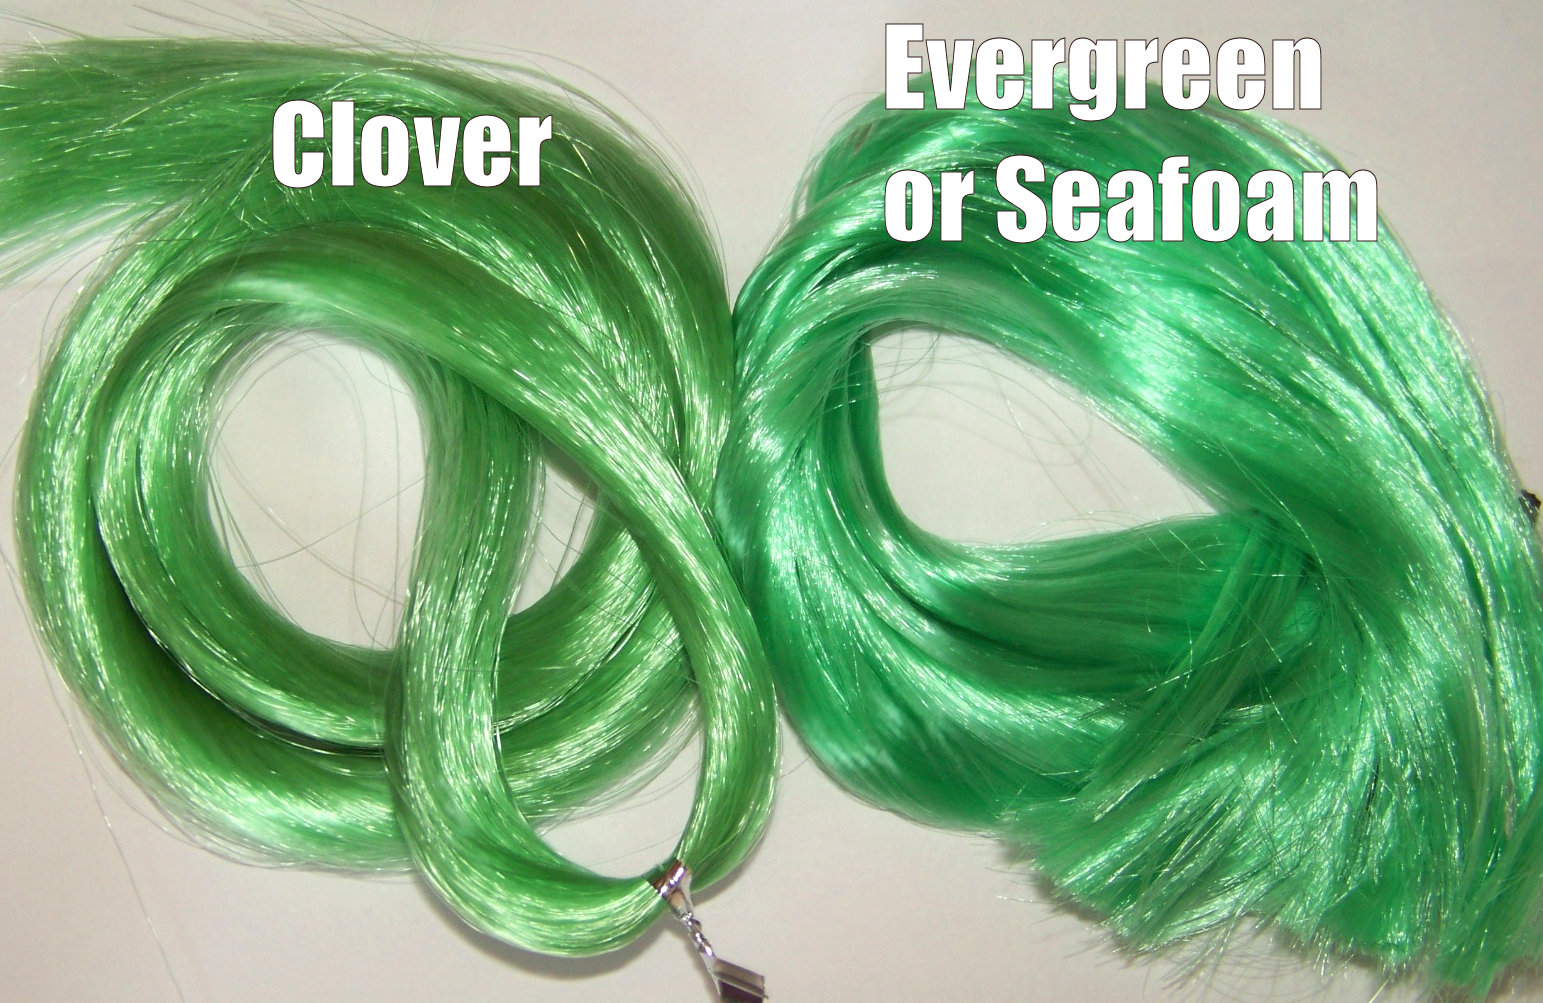 photo clover vs evergreen.jpg